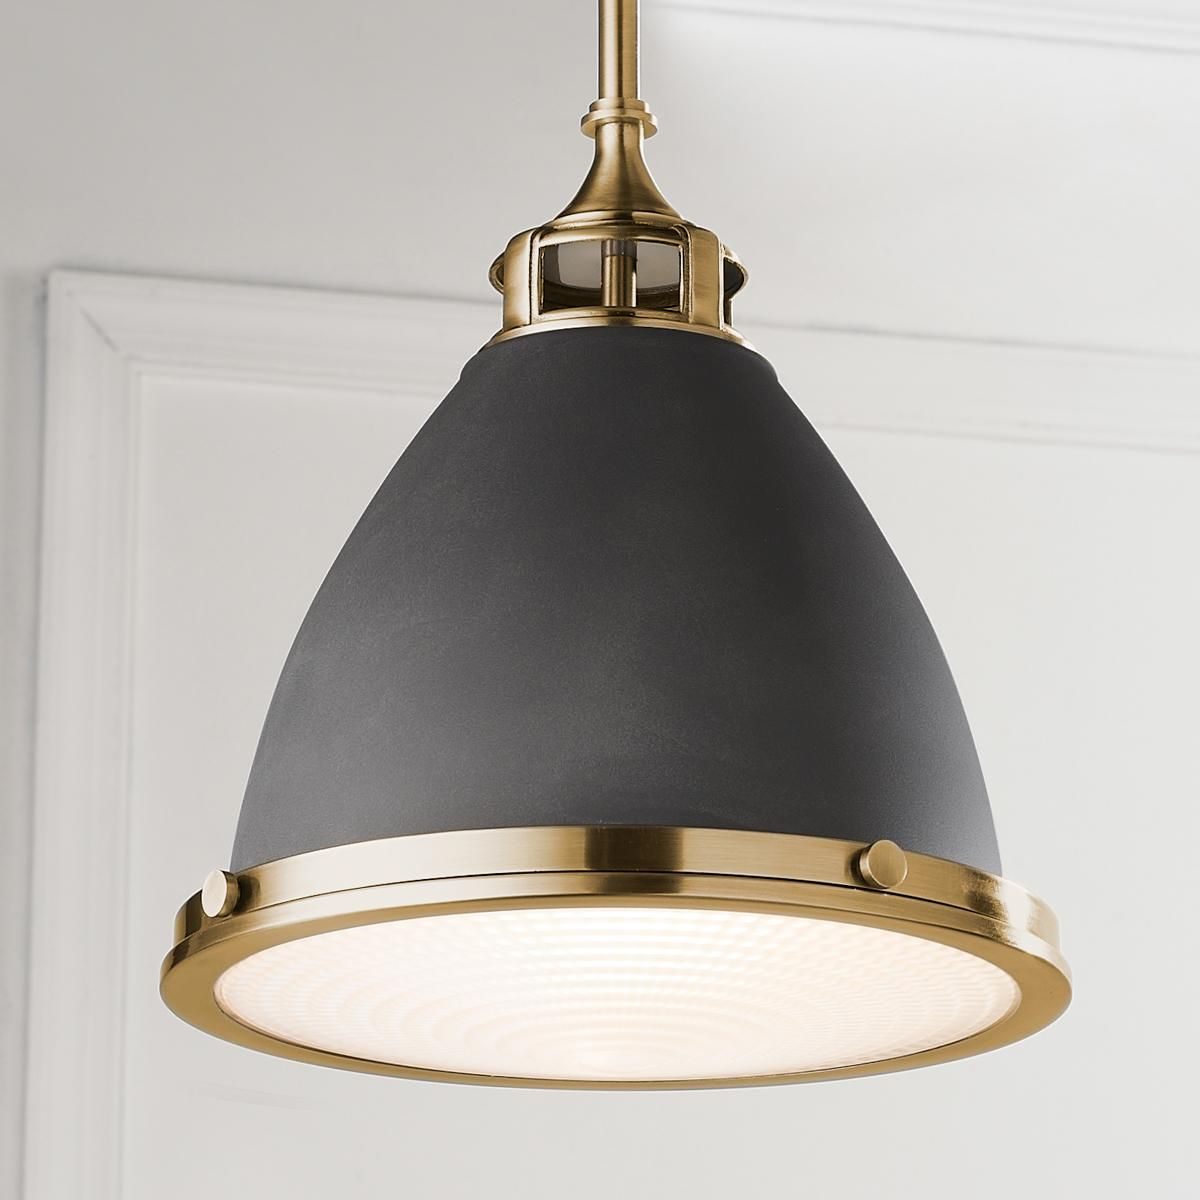 Mixed Metal Schoolhouse Pendant Island Lights